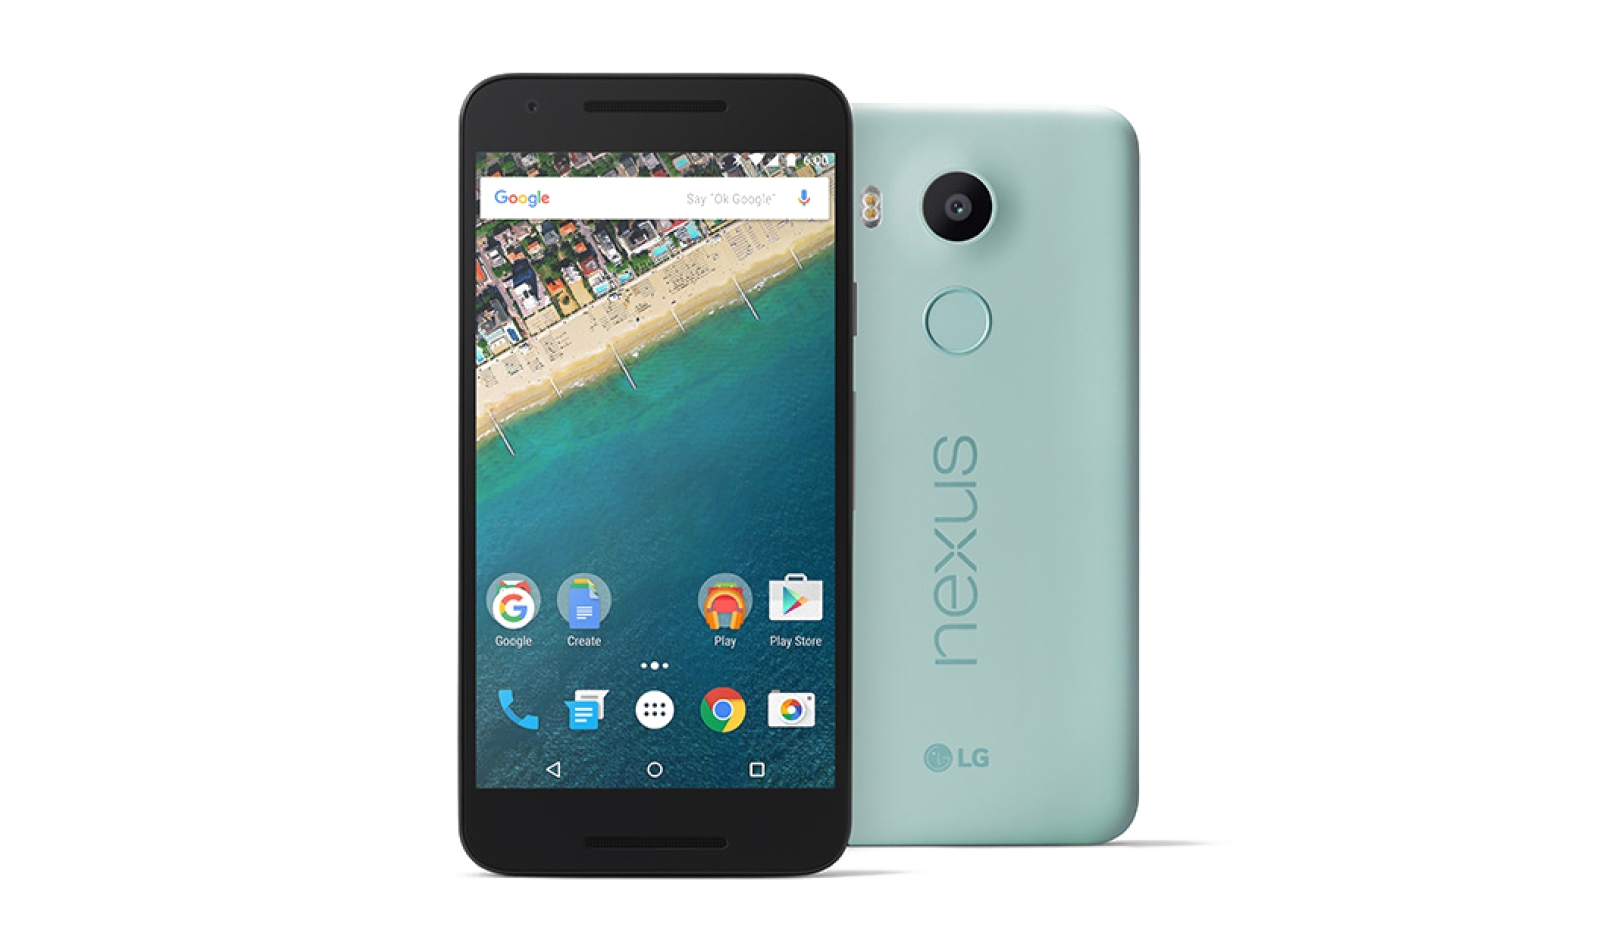 lg nexus 5x handy smartphone 5 2 zoll 16gb lte 12 3 mp. Black Bedroom Furniture Sets. Home Design Ideas